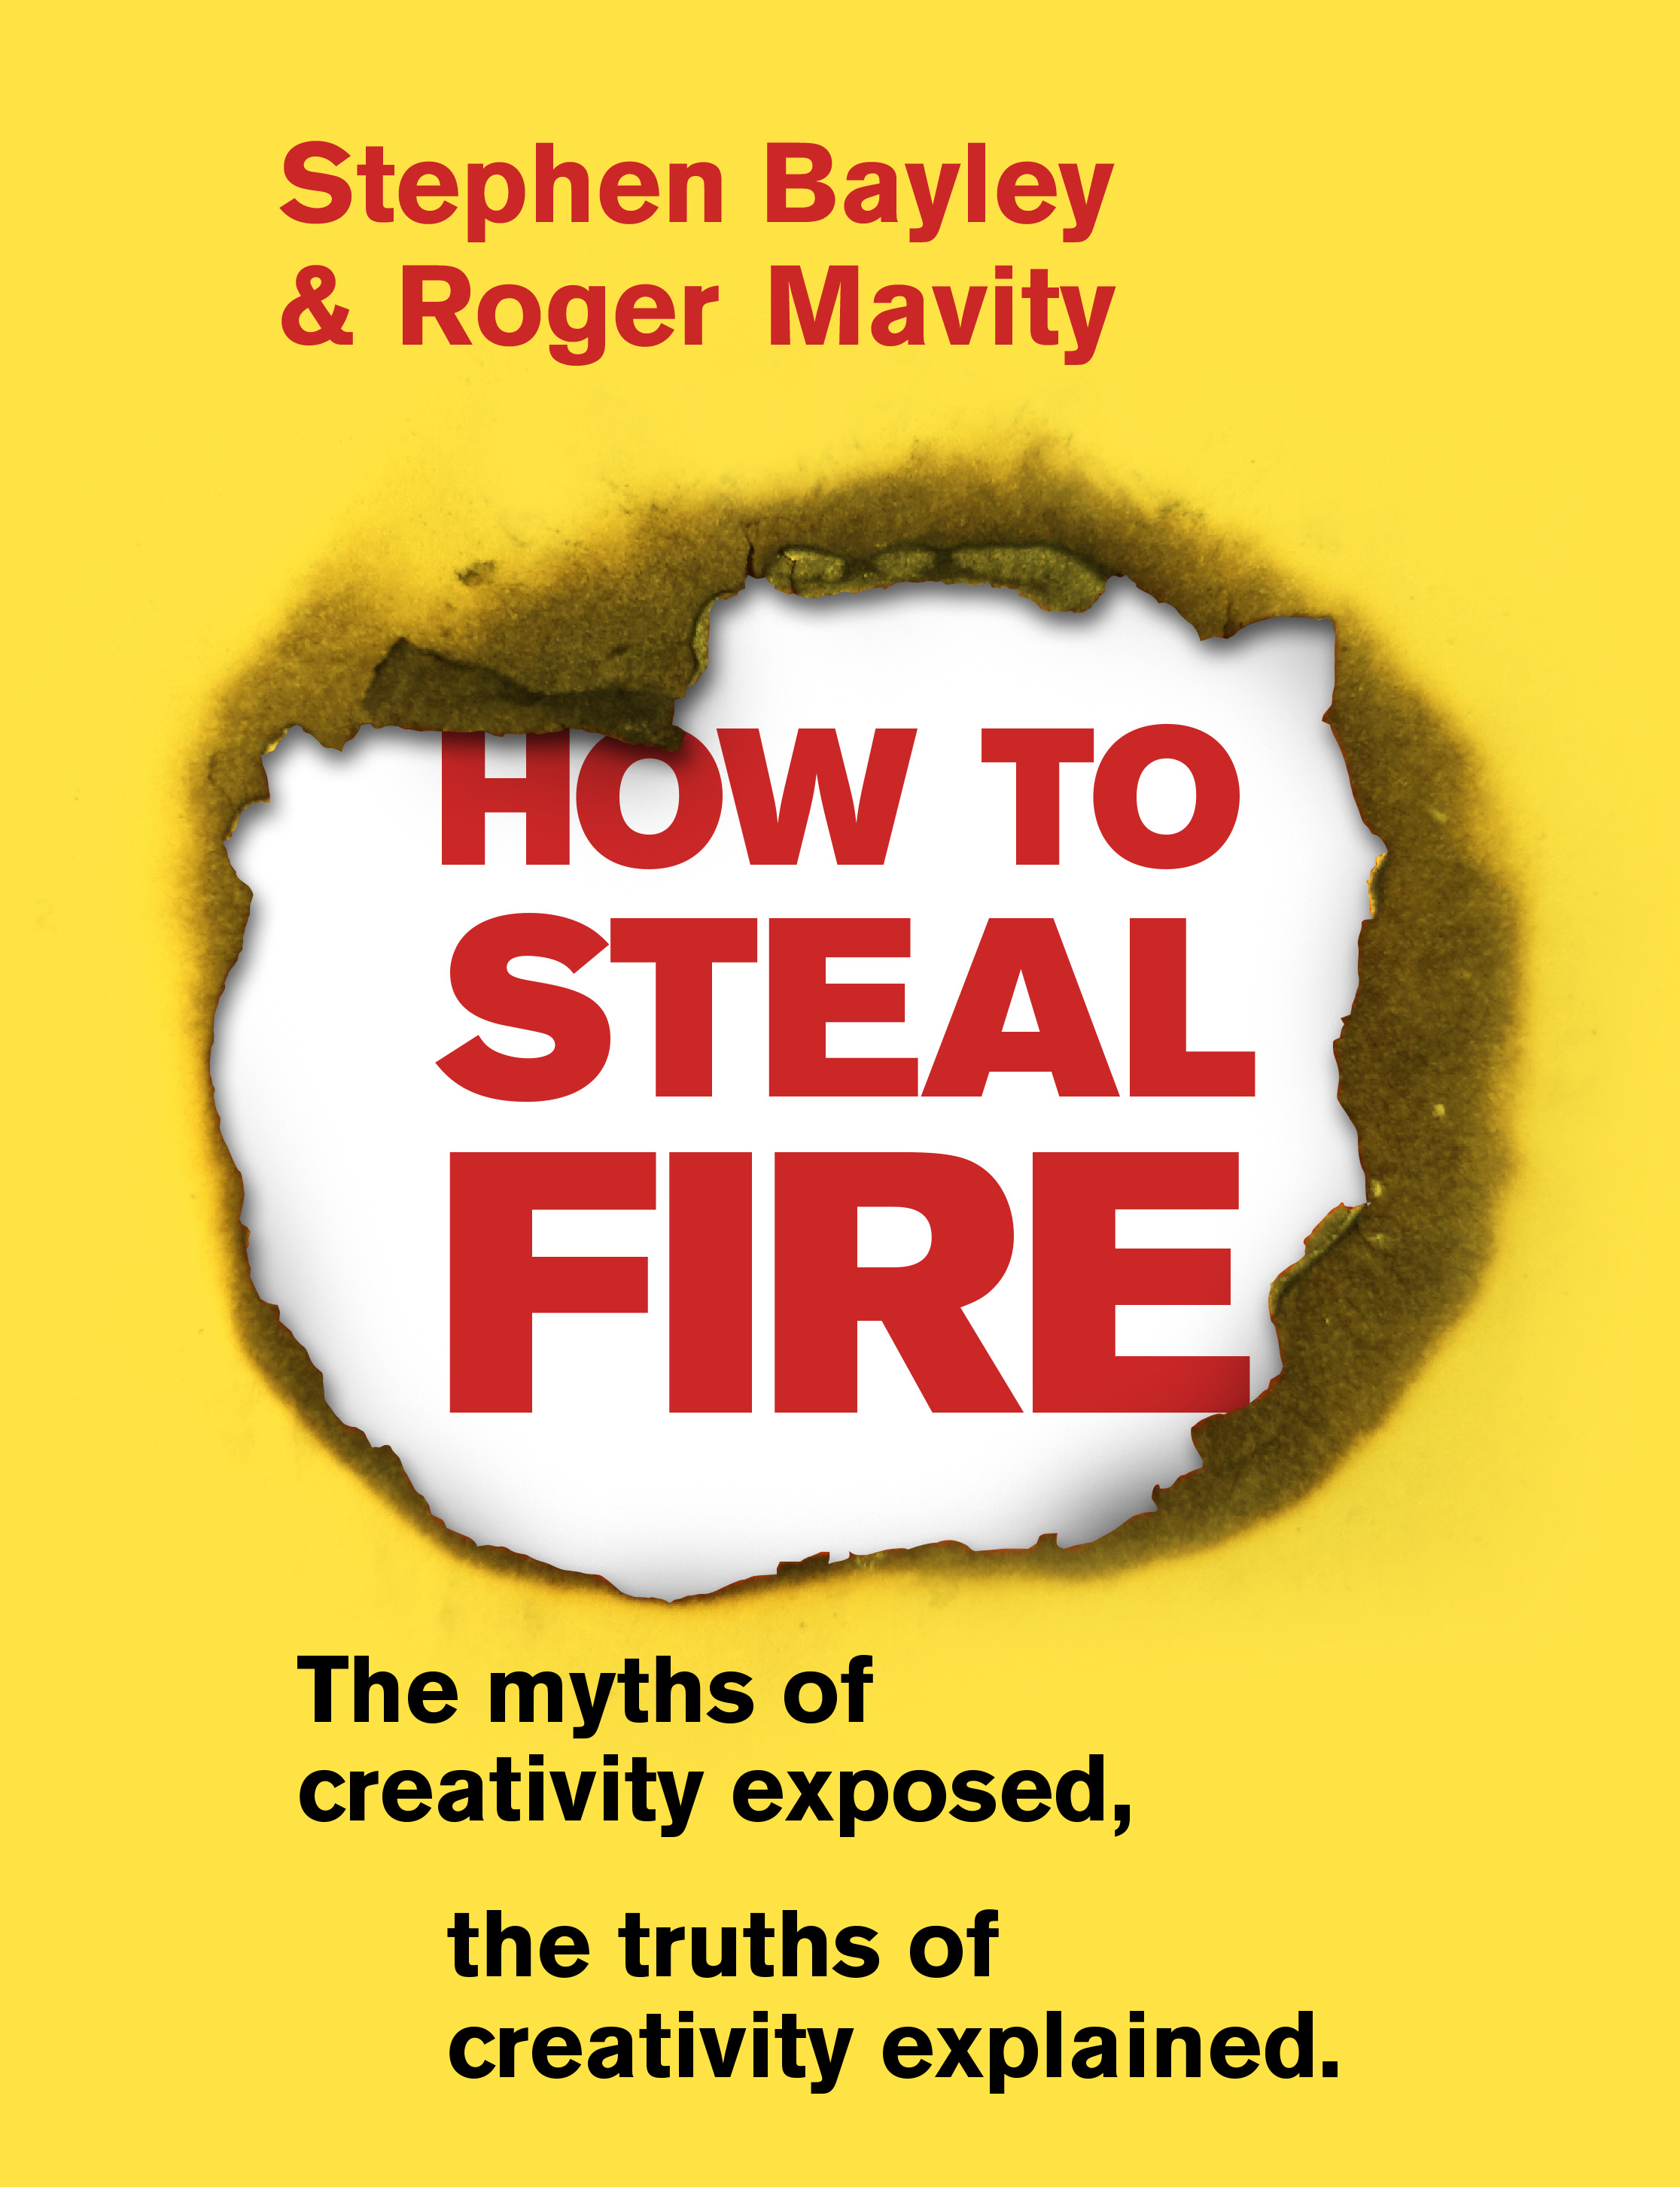 Download Ebook How to Steal Fire by Stephen Bayley Pdf